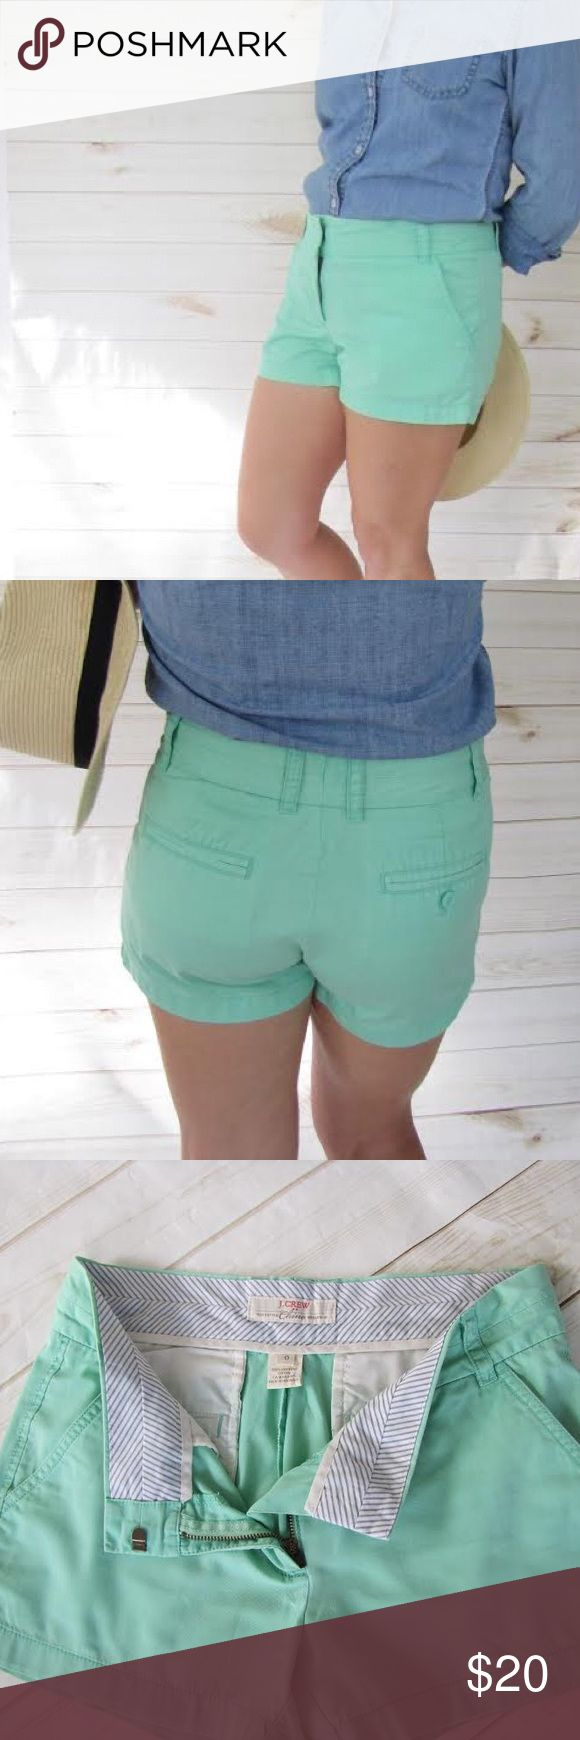 "J. Crew broken-in mint green chino shorts Flat front J. Crew shorts have flat side pockets, zip front, and belt loops. Fabric is 100% cotton, in the classic broken-in wash. Excellent used condition. No marks, stains, or pilling. Measurements are approximate, taken taken when garment is lying flat: Waist = 15.5"" Inseam = 3""  Rise = 8"" J. Crew Shorts"